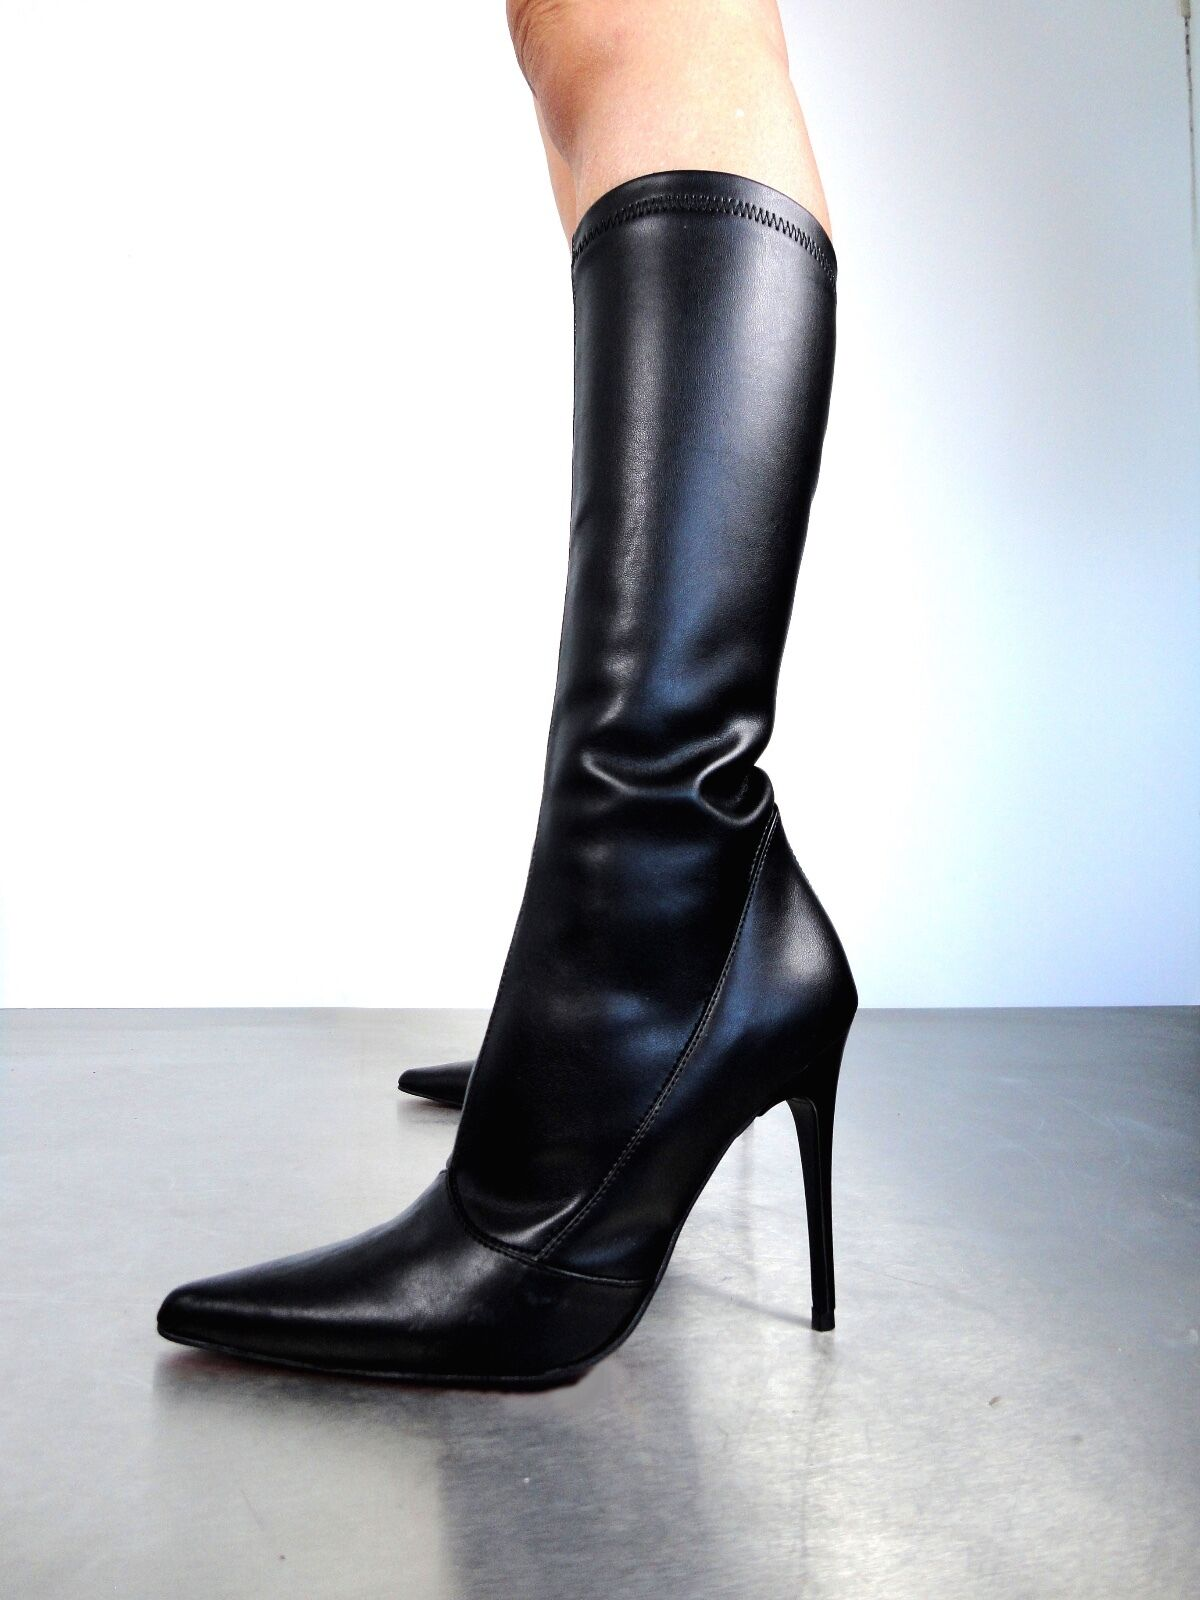 GIOHEL ITALY POINTY KNEE HIGH HIGH KNEE HEEL BOOTS STIEFEL STIVALI STRETCH PELLE NERO 35 334681